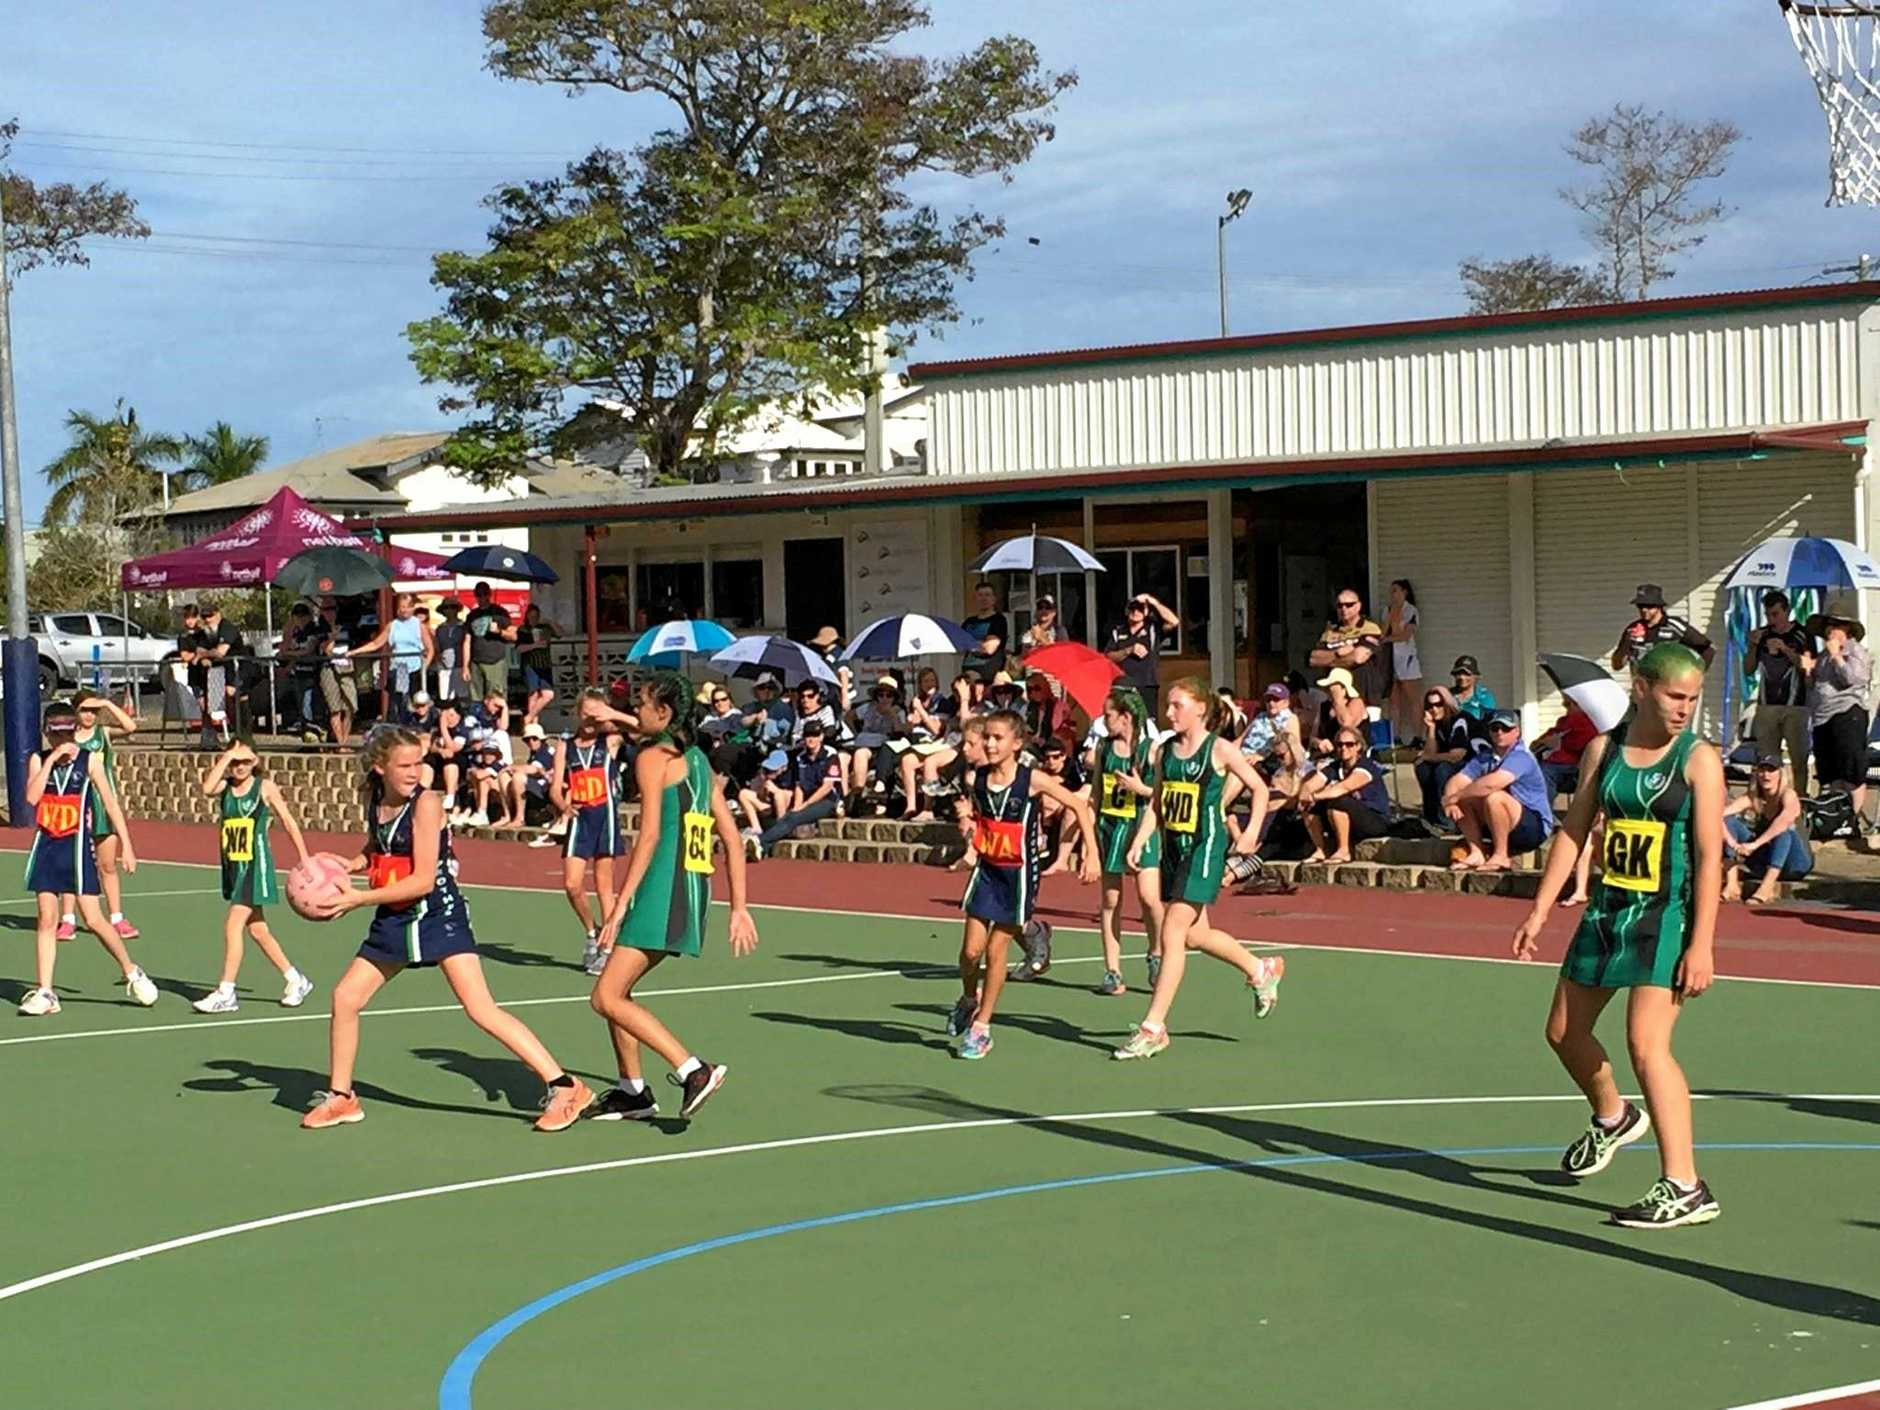 A total of 161 teams will play in the Rockhampton Netball Association's 2018 season.